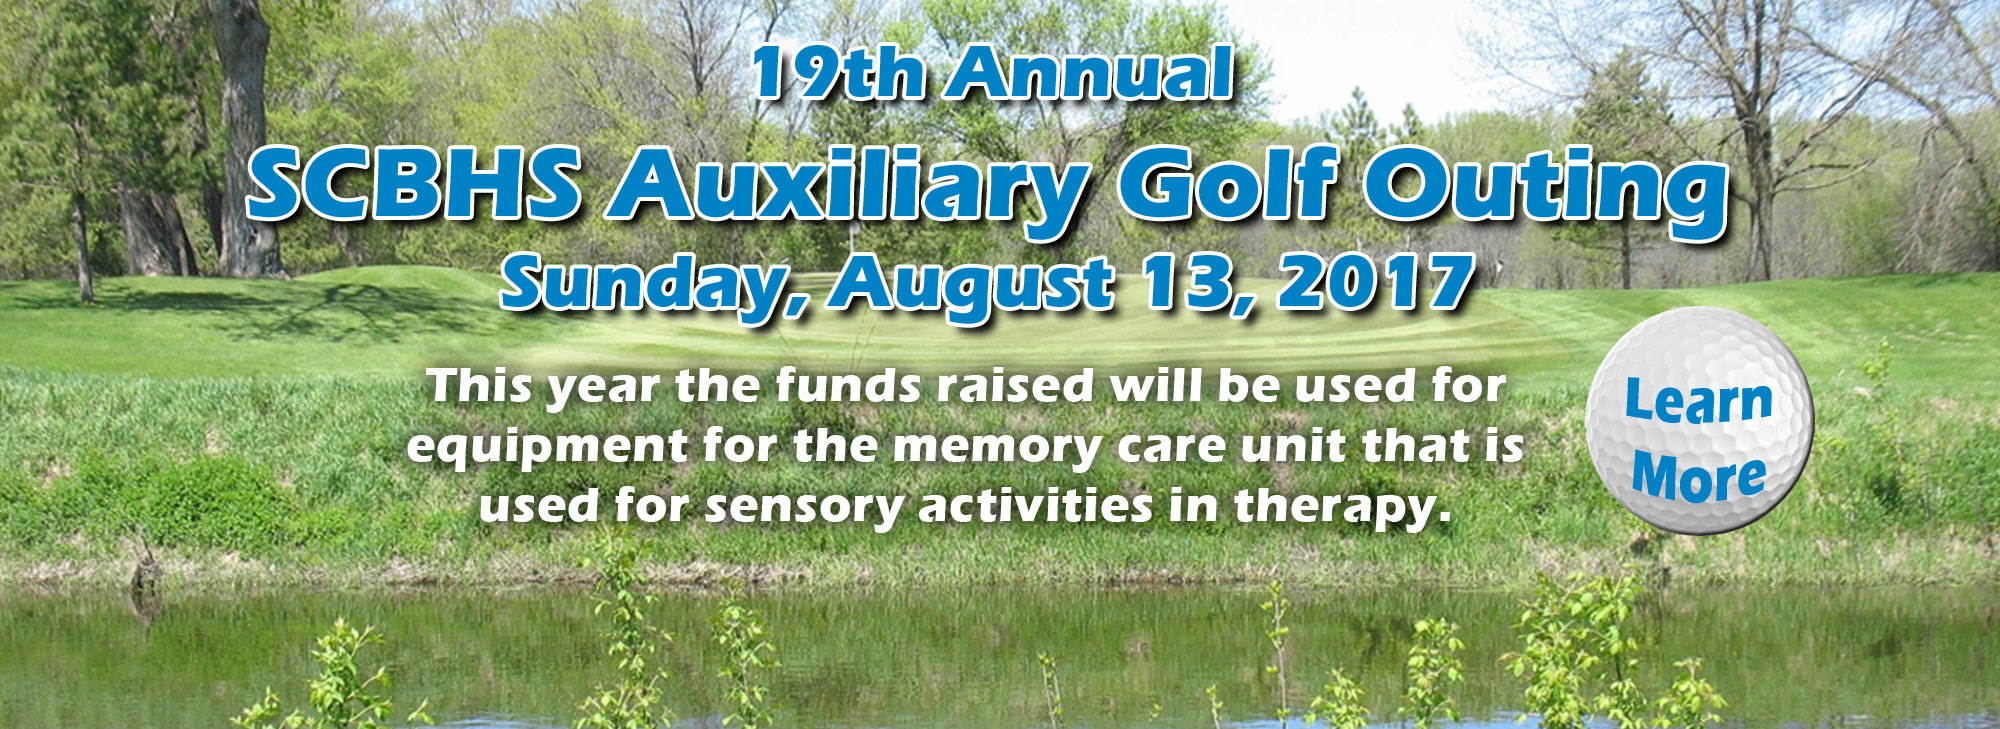 Auxiliary Golf Outing